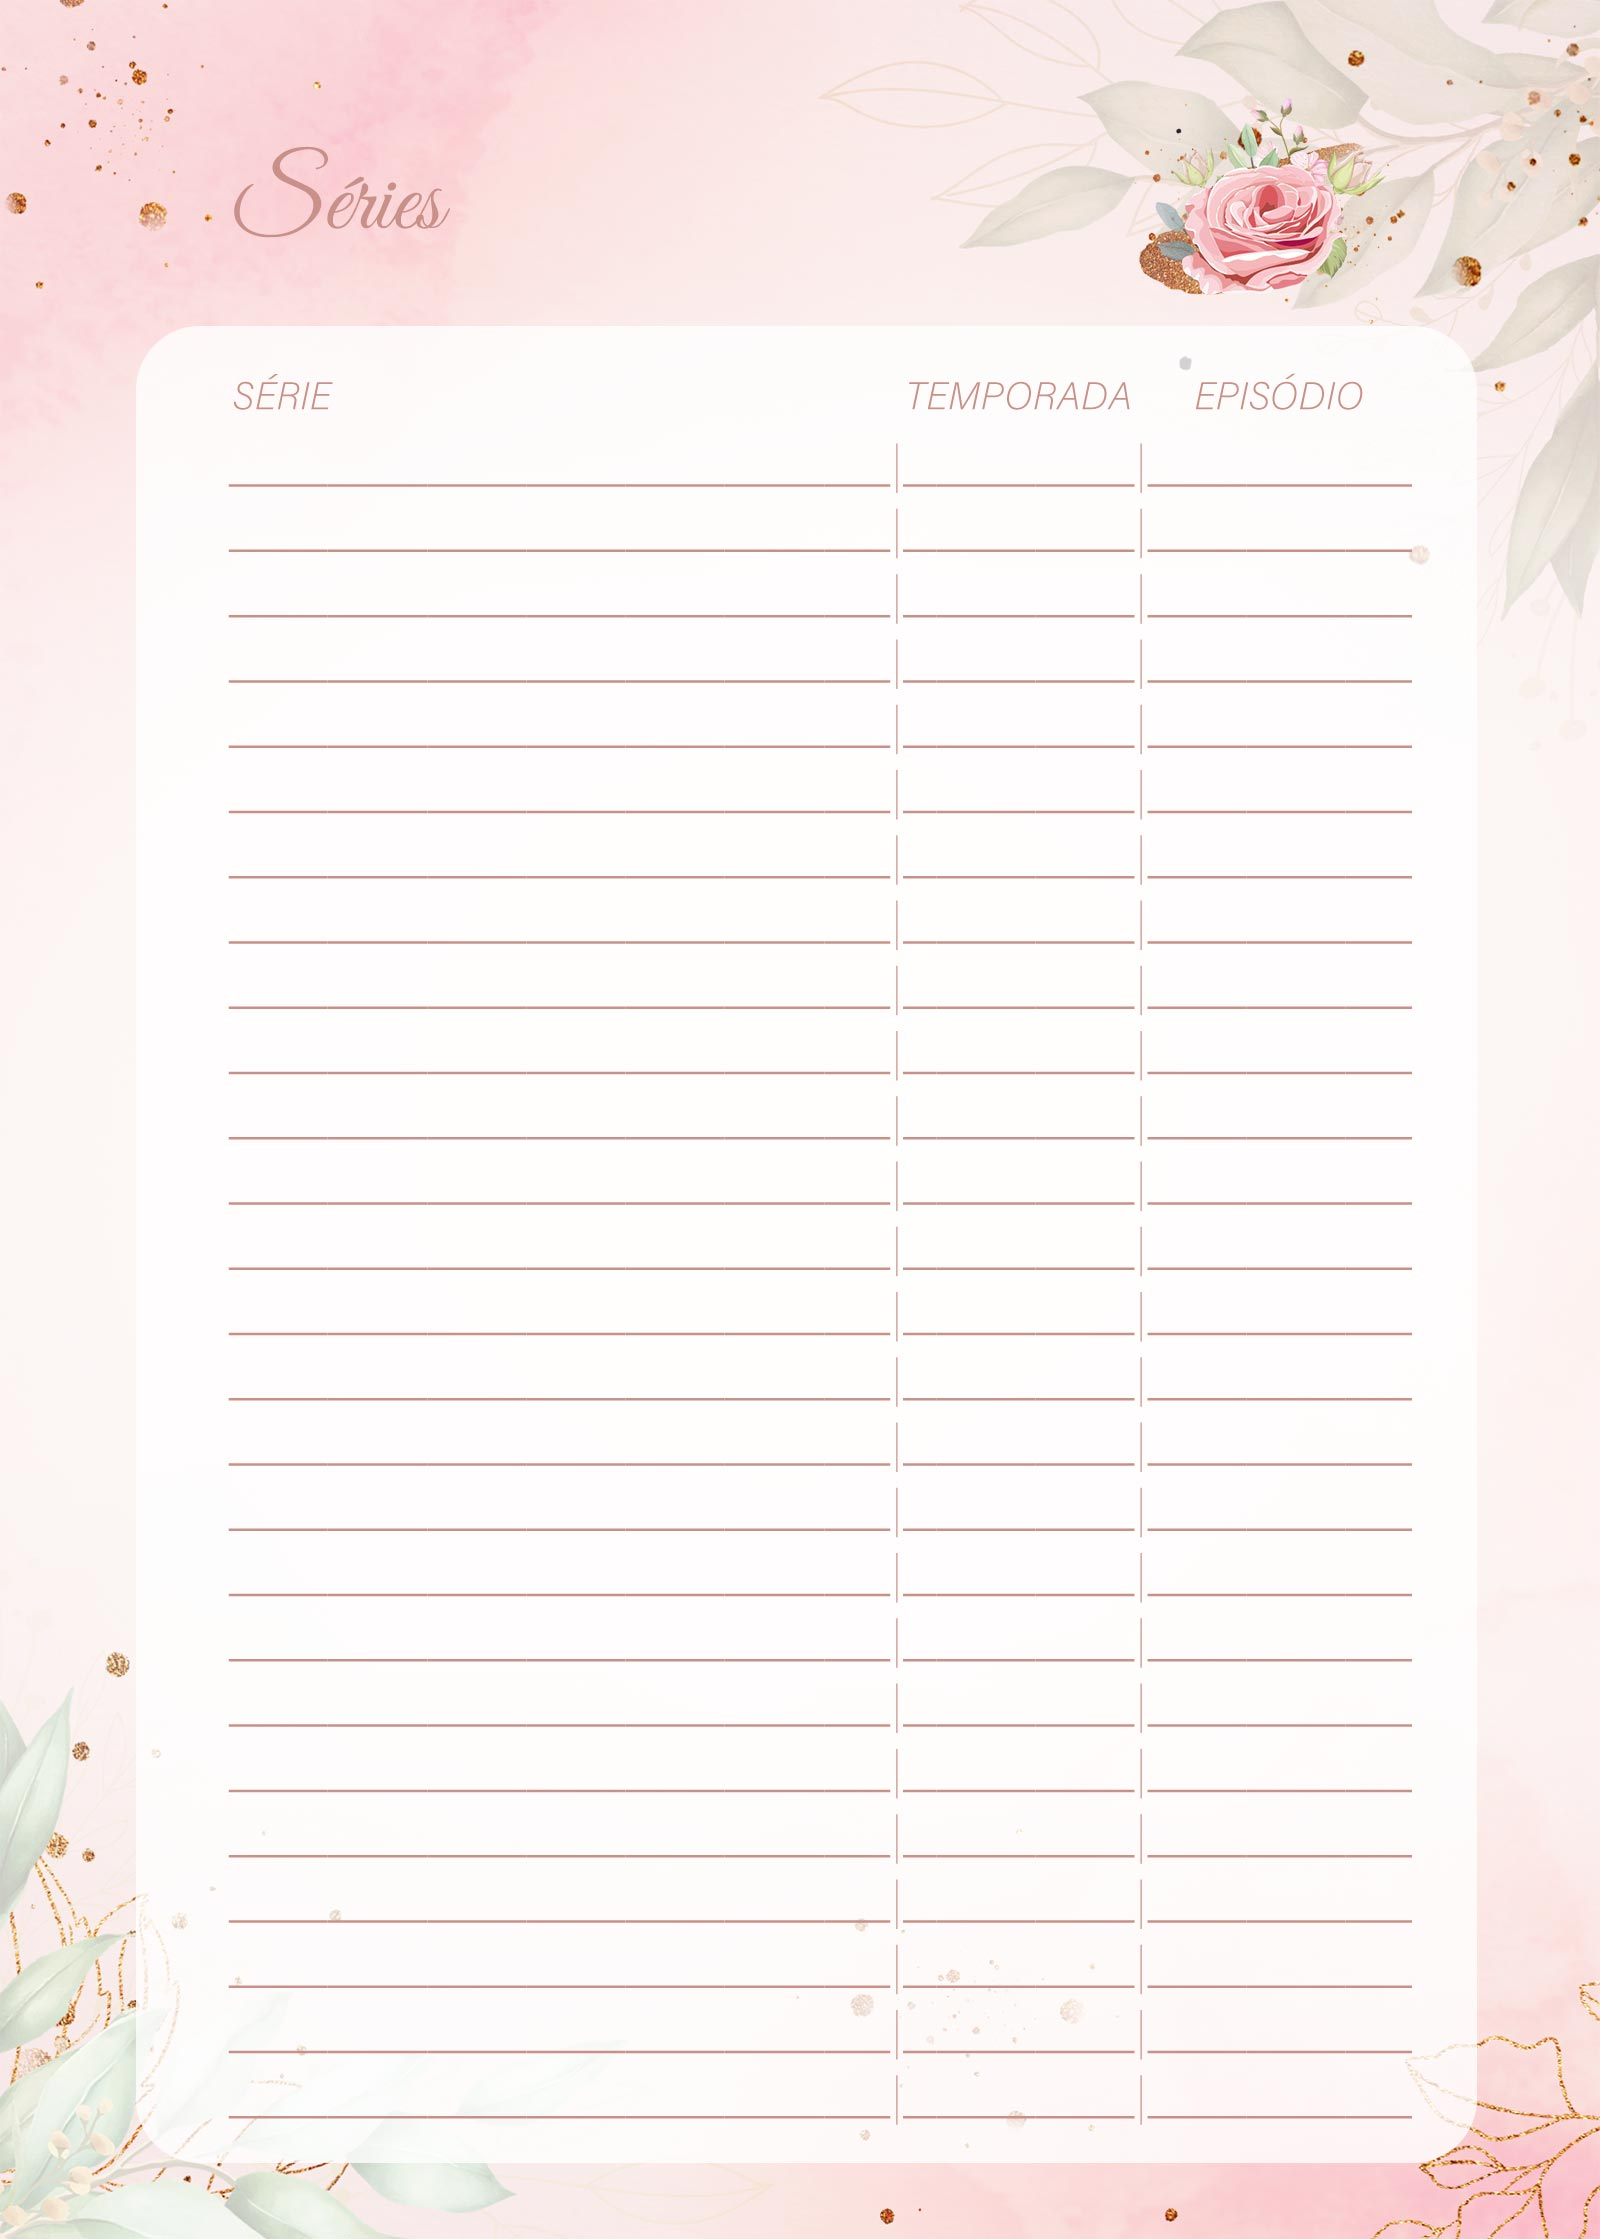 Planner 2021 Floral com Inicial Series